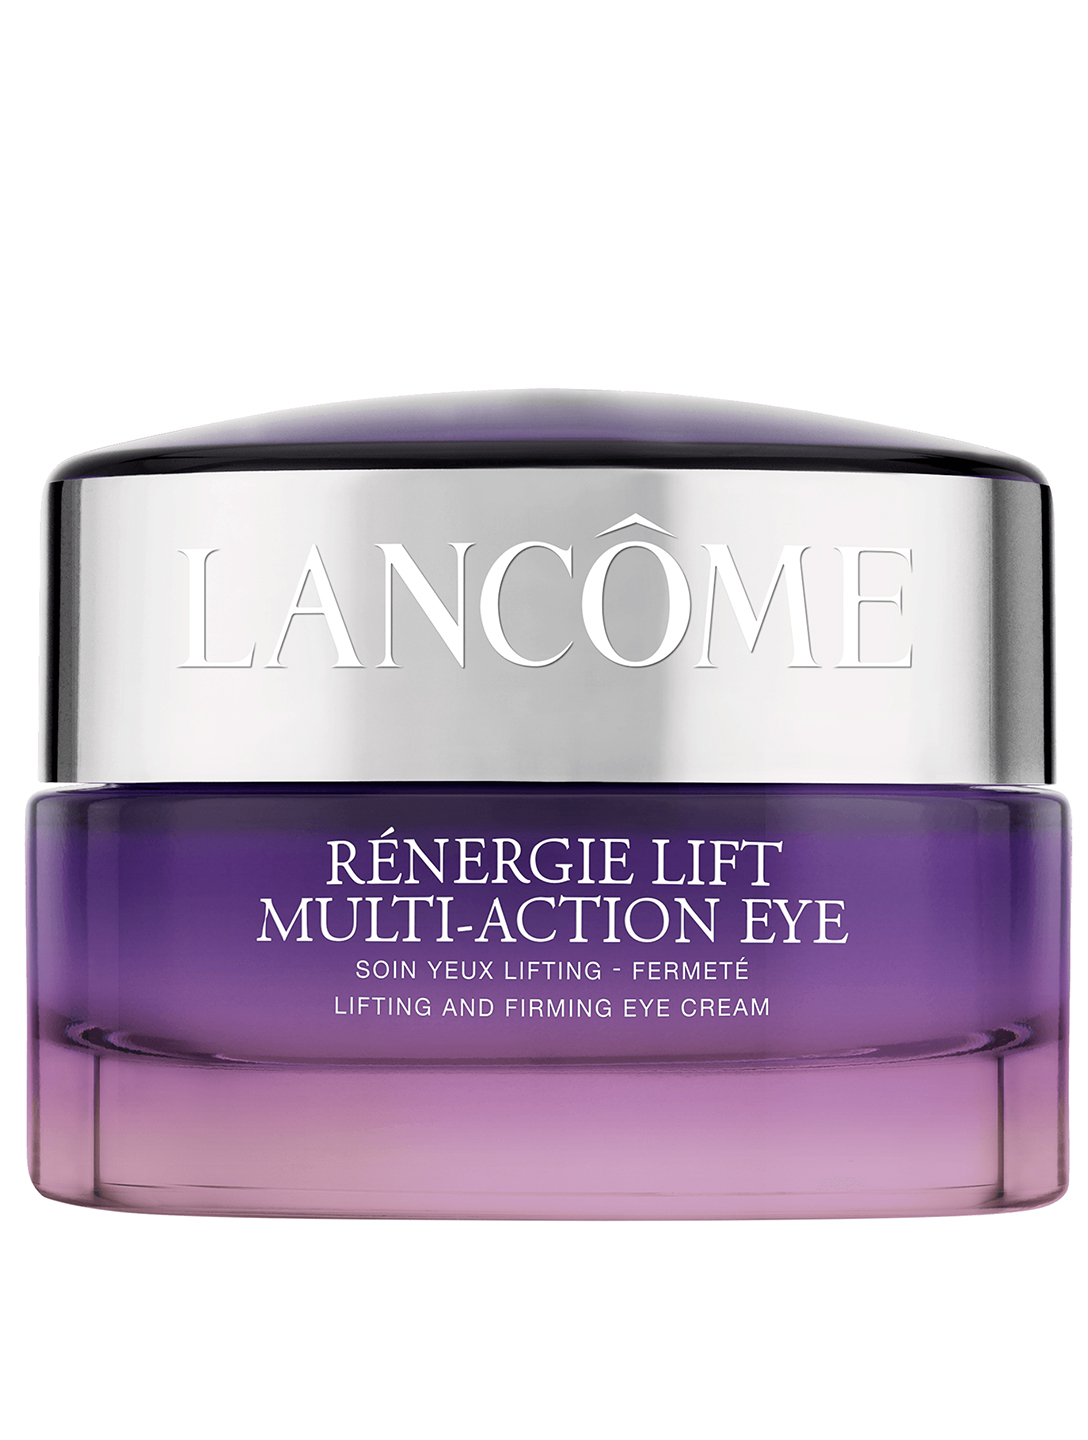 LANCÔME Rénergie Lift Multi-Action Eye Lifting and Firming Eye Cream Beauty